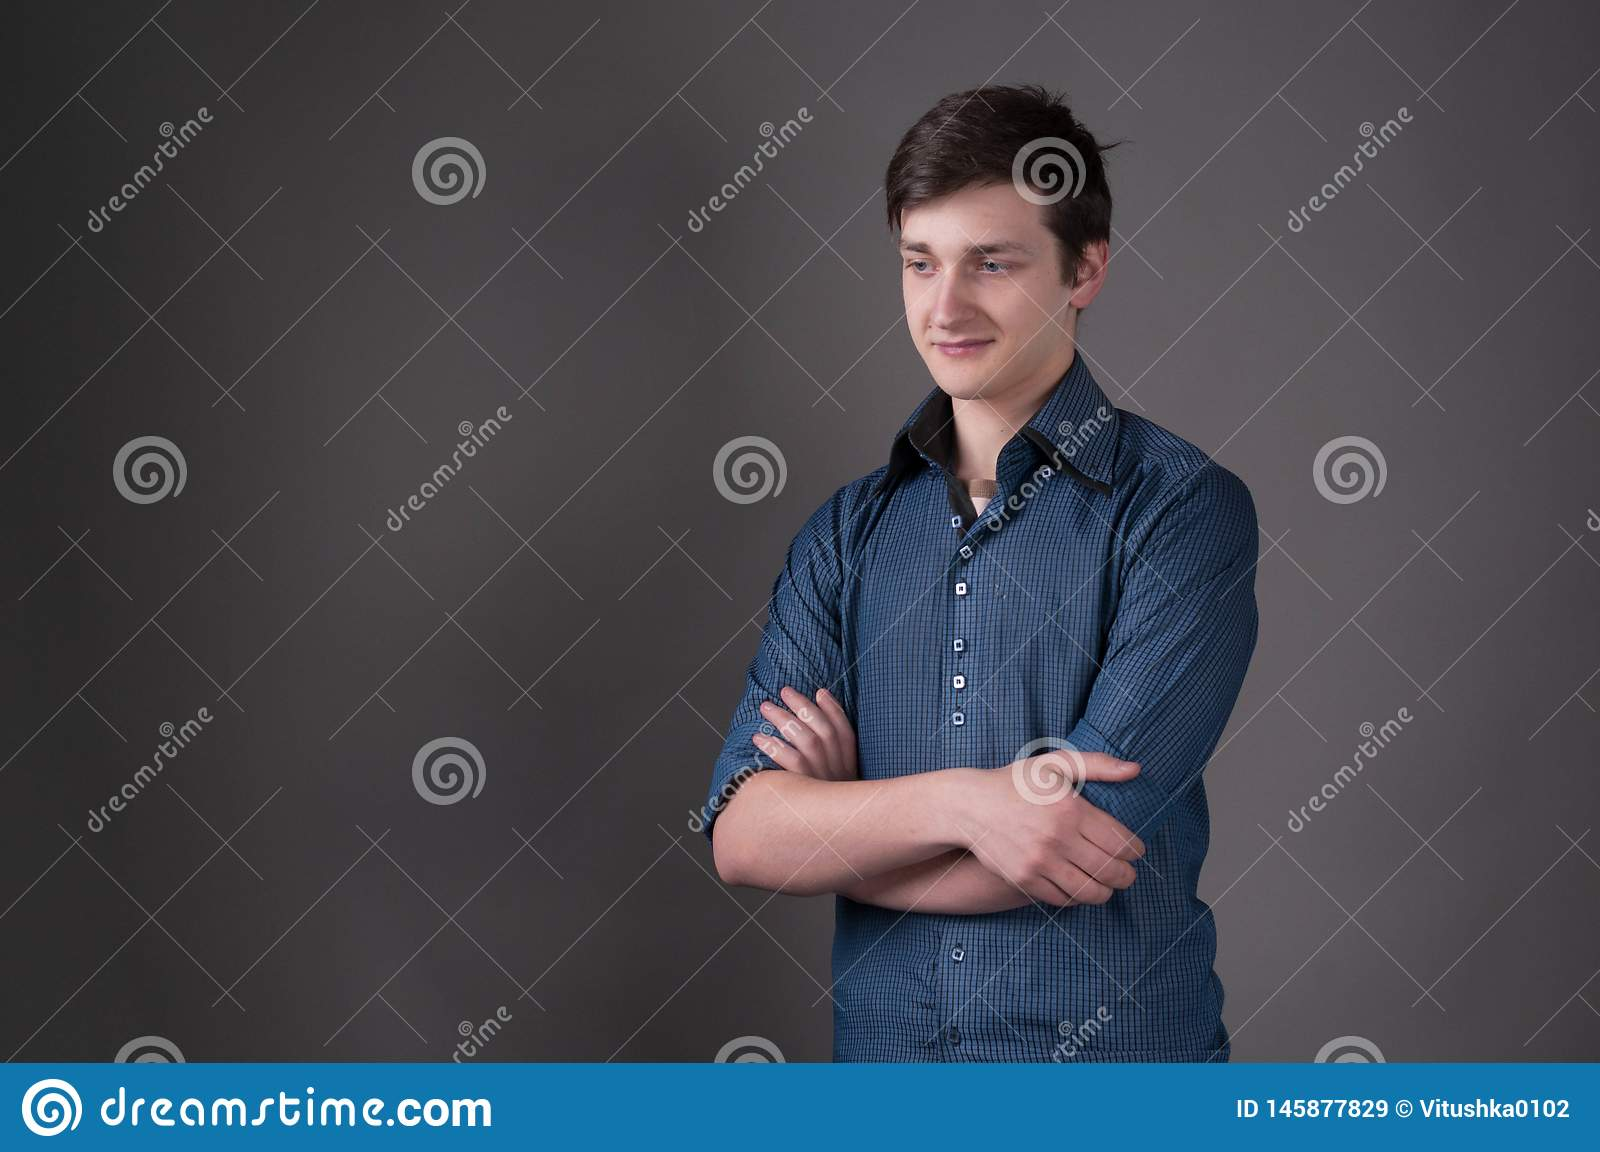 Handsome young man in blue shirt looking away with crossed arms and on grey background